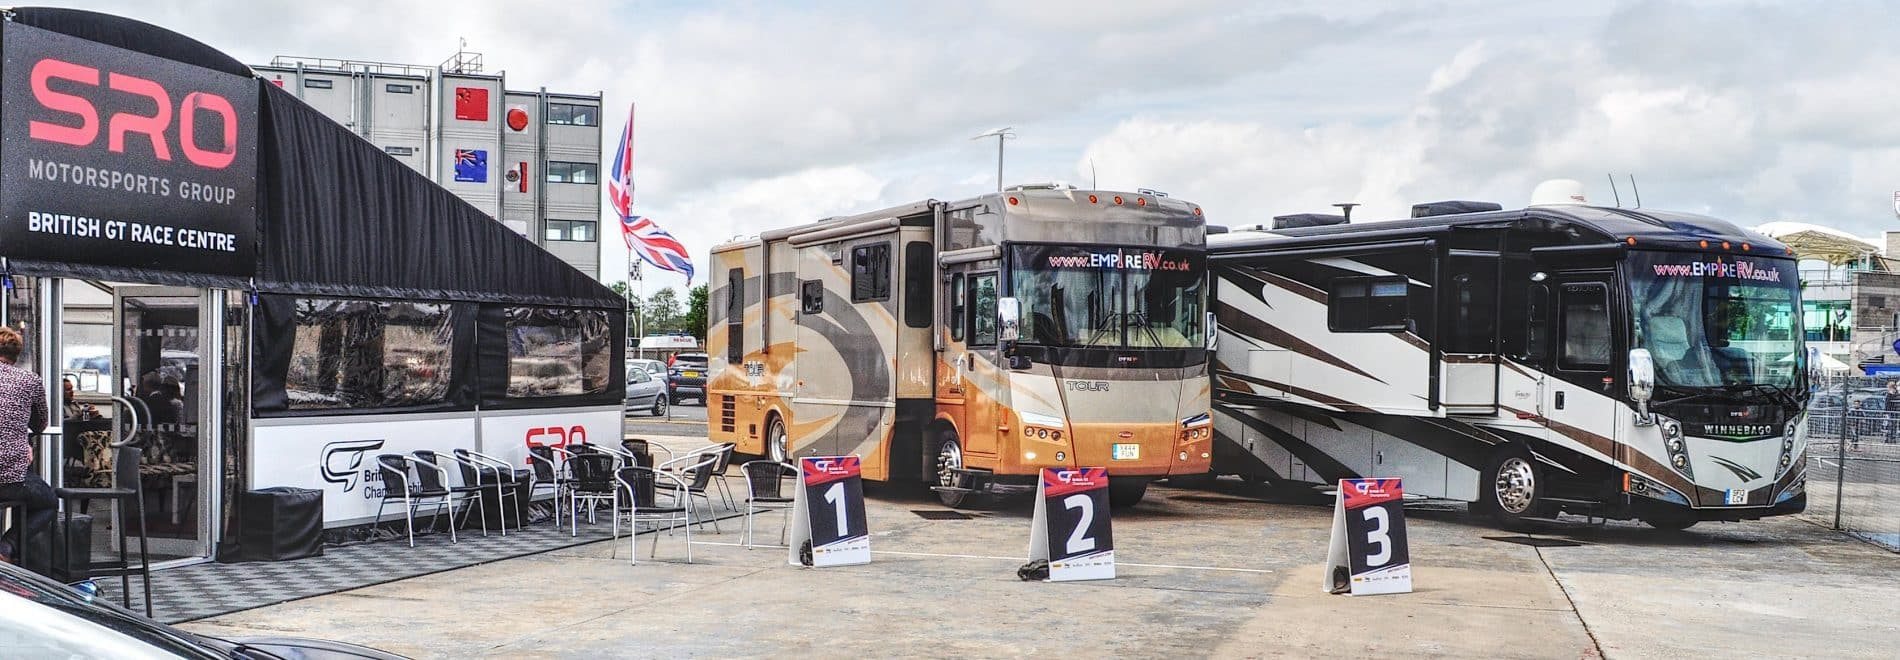 American Motorhome Hire And Rvs For Sale Uk Amp Europe